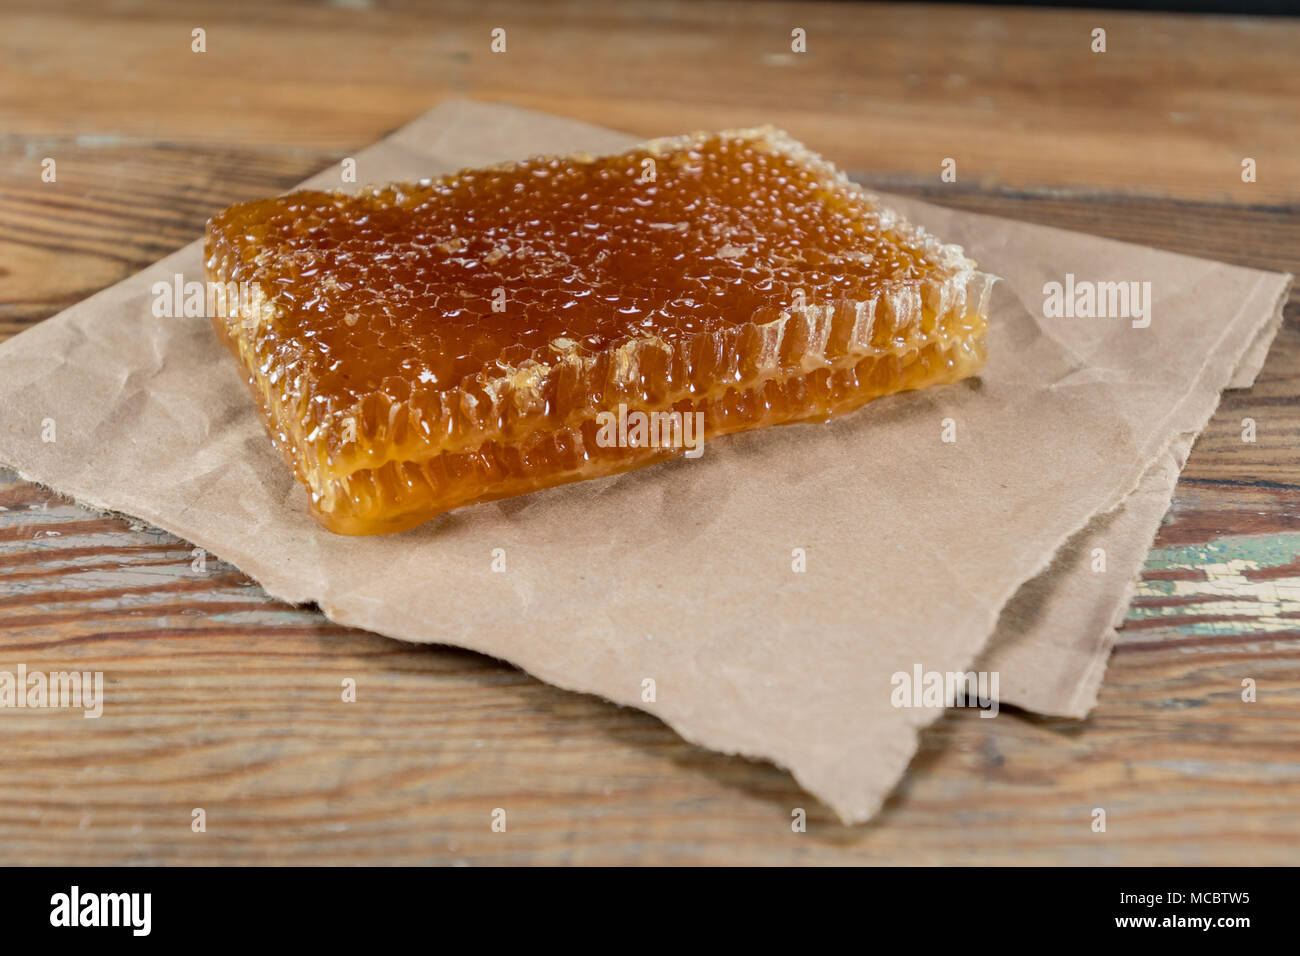 Angle View of Honey Comb on Brown Paper on wooden table - Stock Image